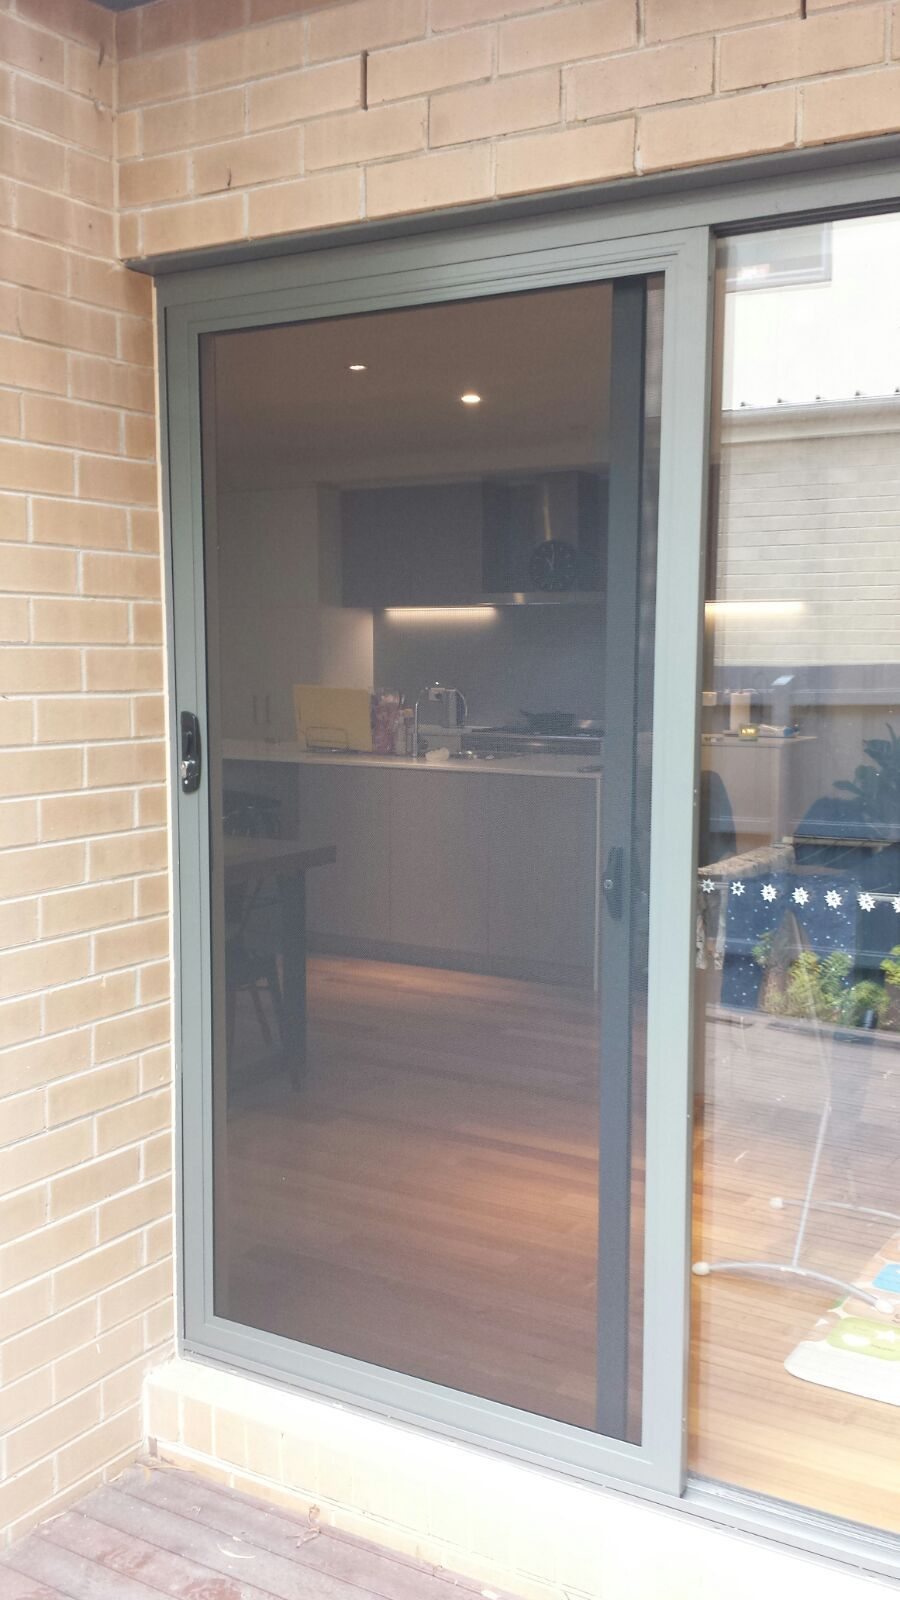 Aluminium Frame Security Slidingdoor With Stainless Steel Mesh Installed In Mt Waverley Portas